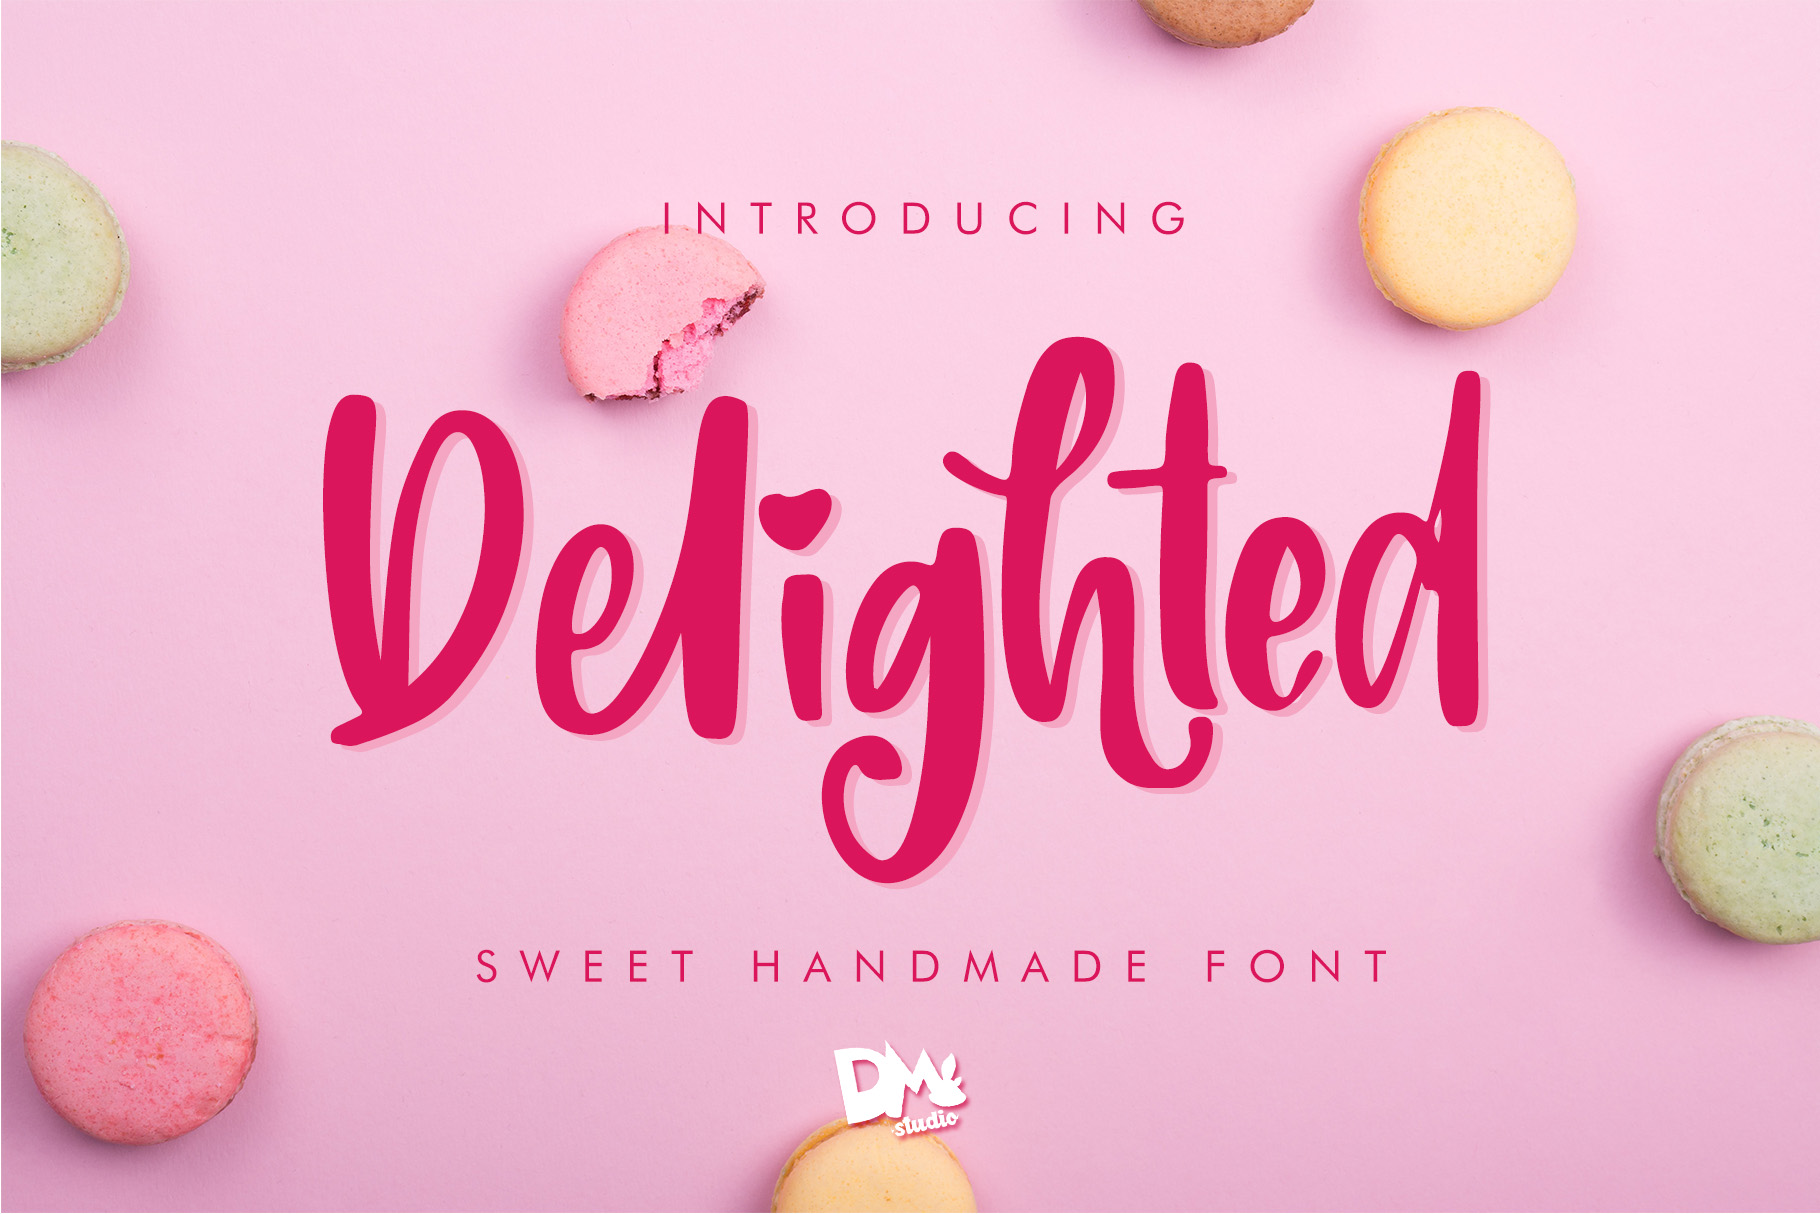 Delighted Sweet Handmade Font example image 1